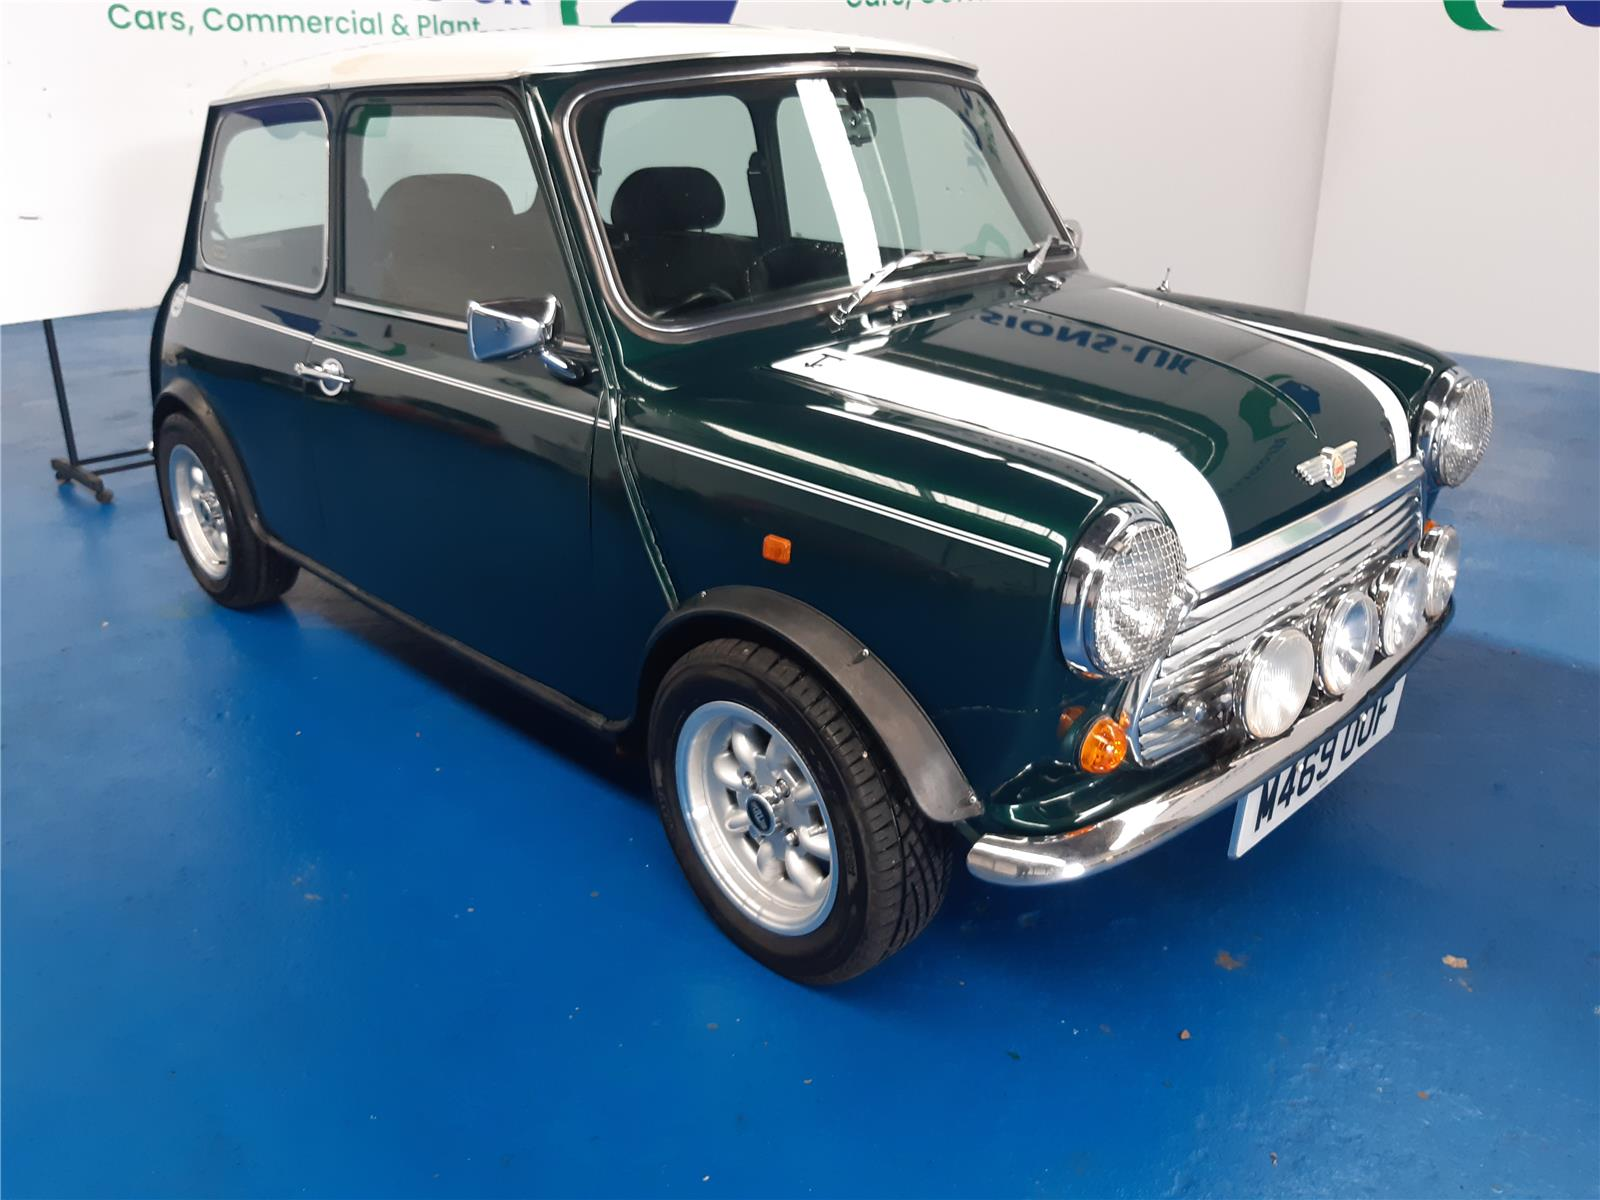 1995 ROVER MINI 1275 PETROL MANUAL 4 Speed 2 DOOR SALOON